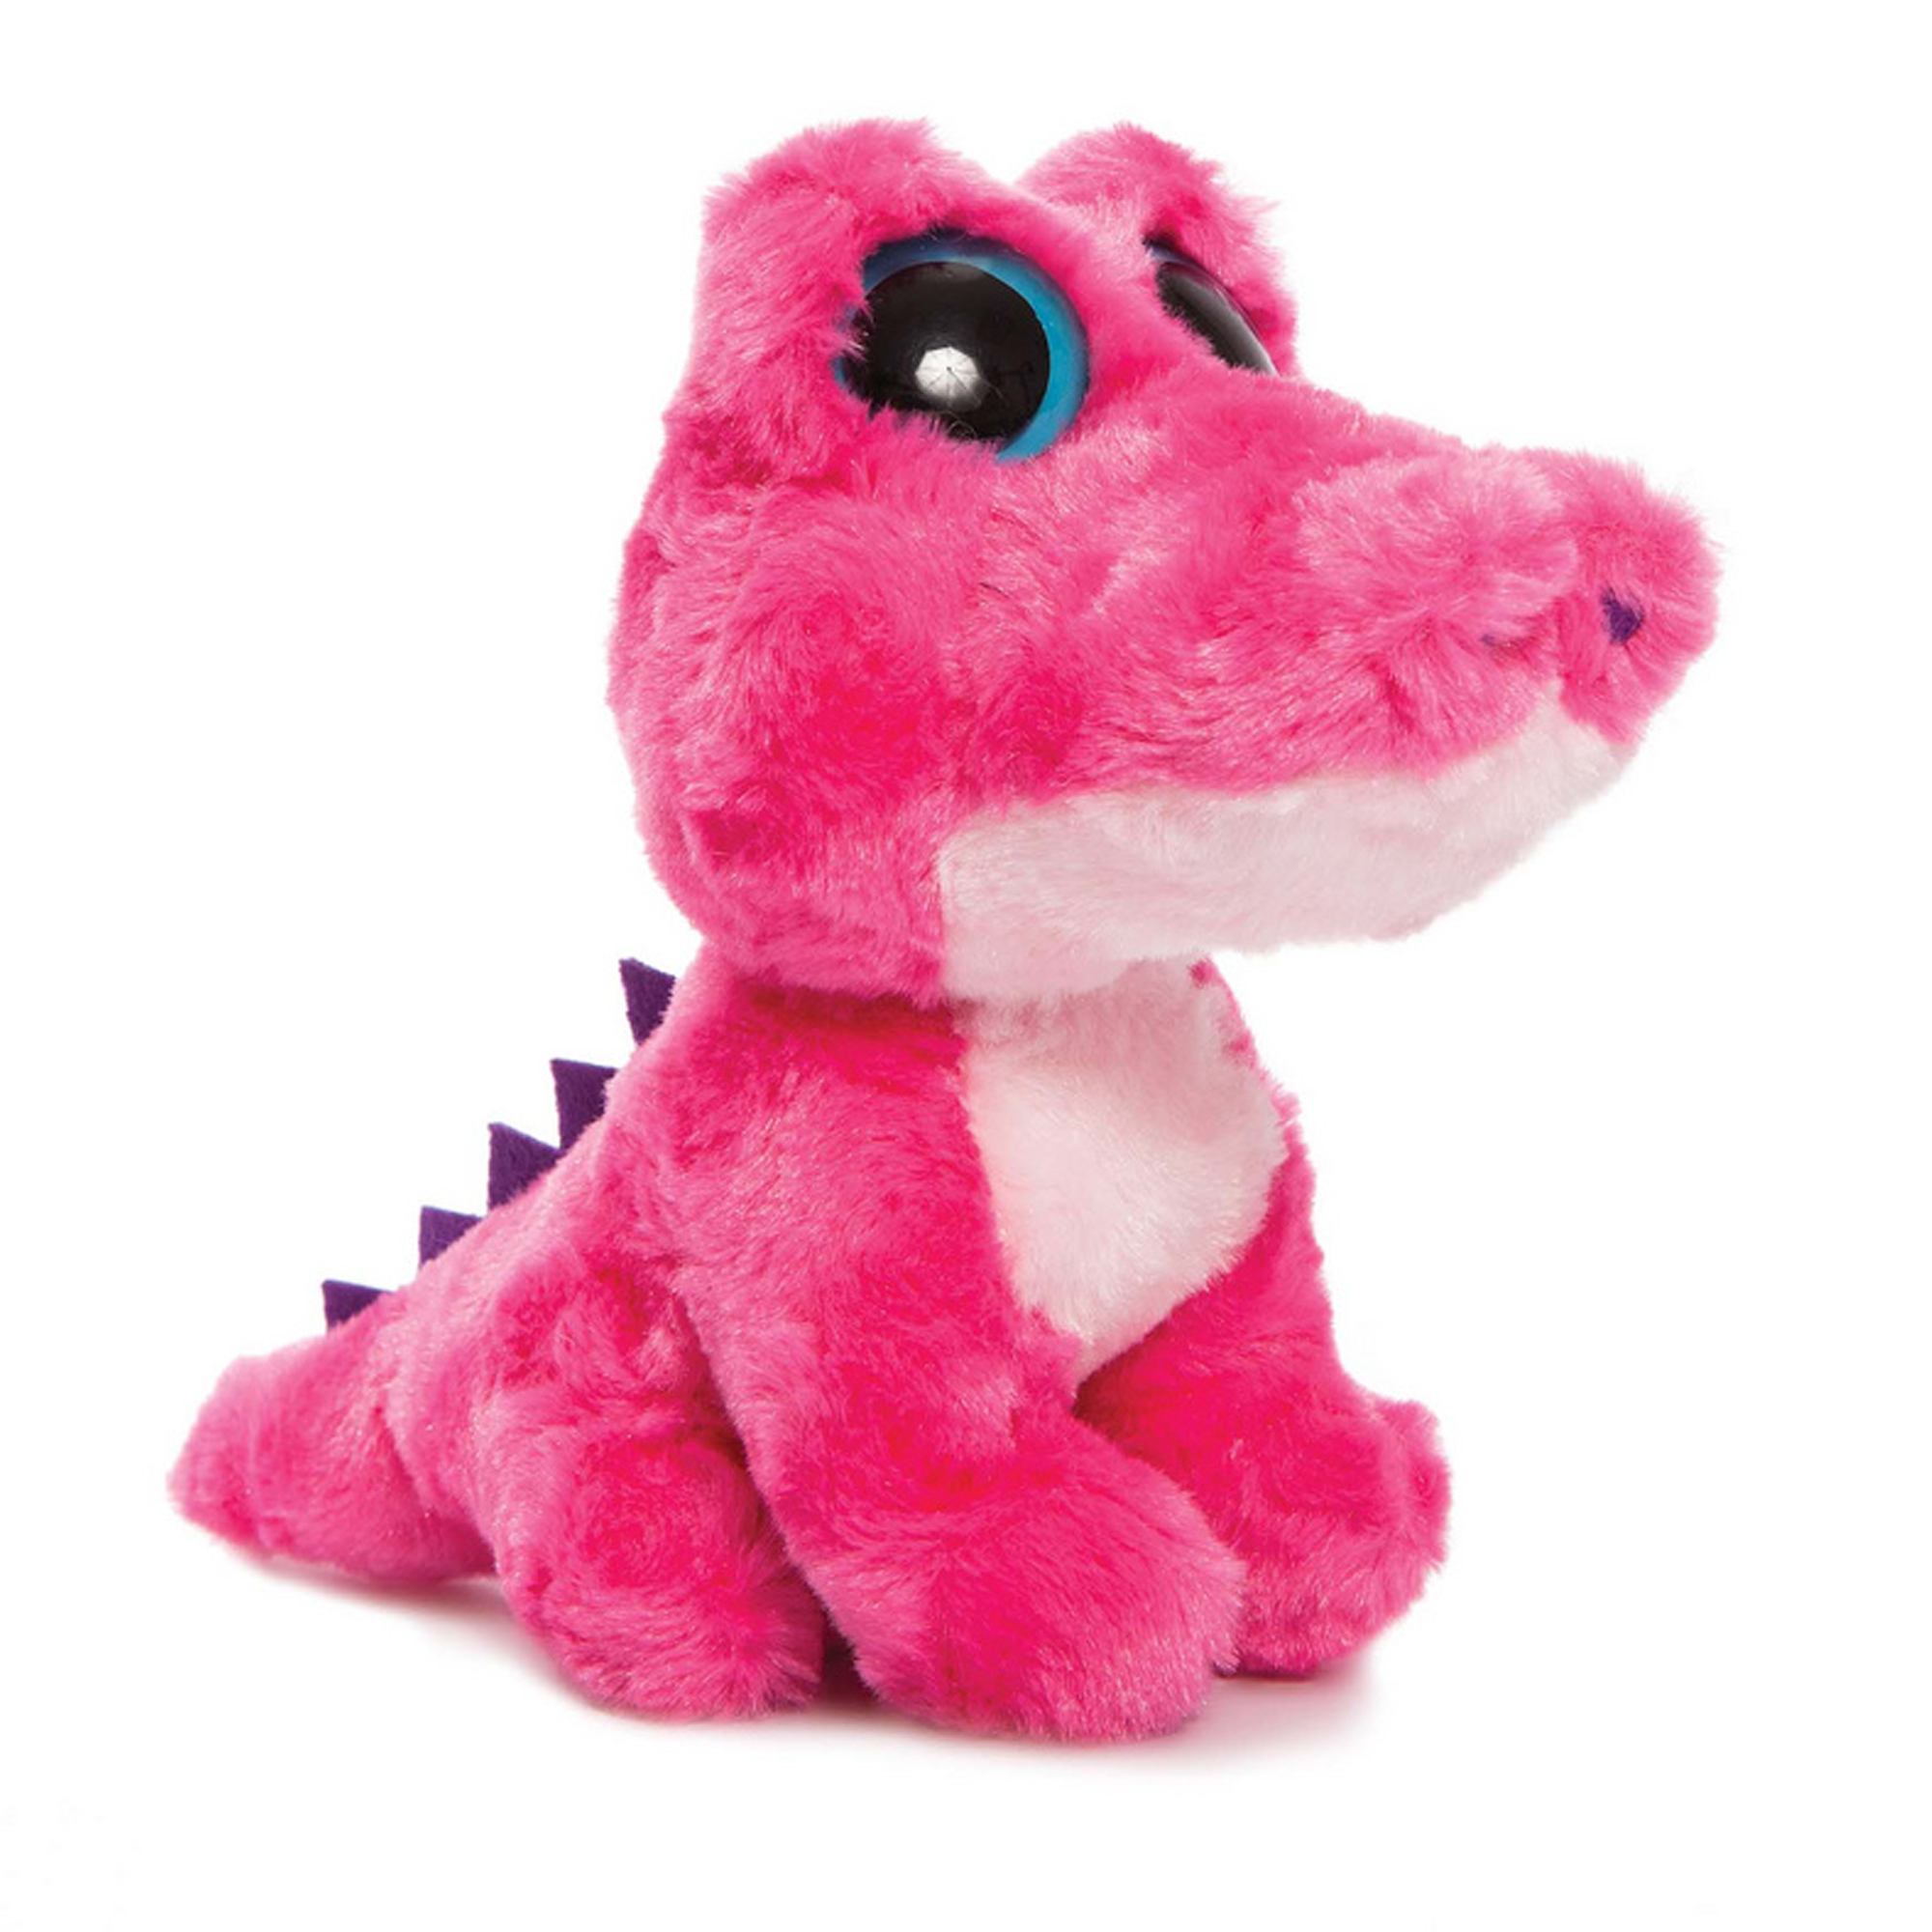 Yoohoo & Friends Hot Pink Smilee Alligator 5